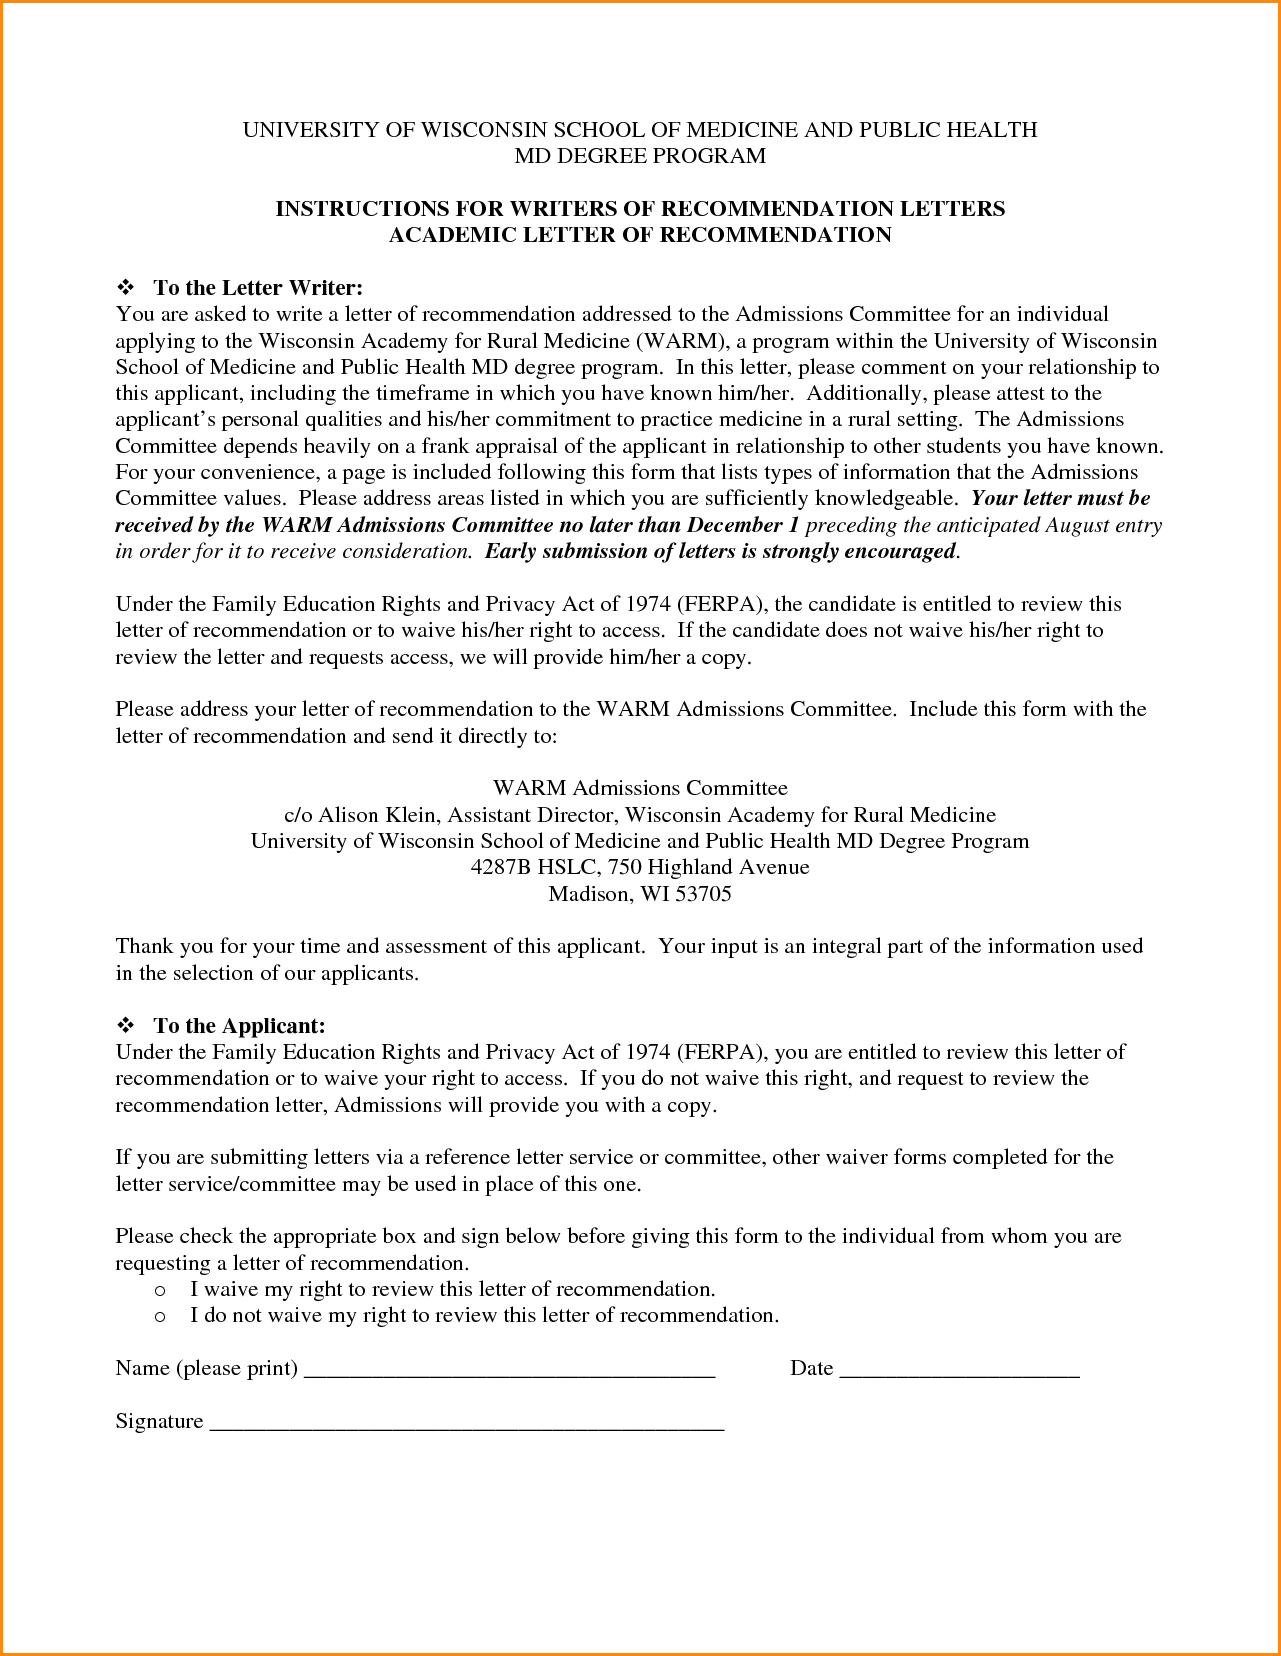 Template for Letter Of Recommendation for Medical School - Letter Re Mendation Medical School Requirements S High